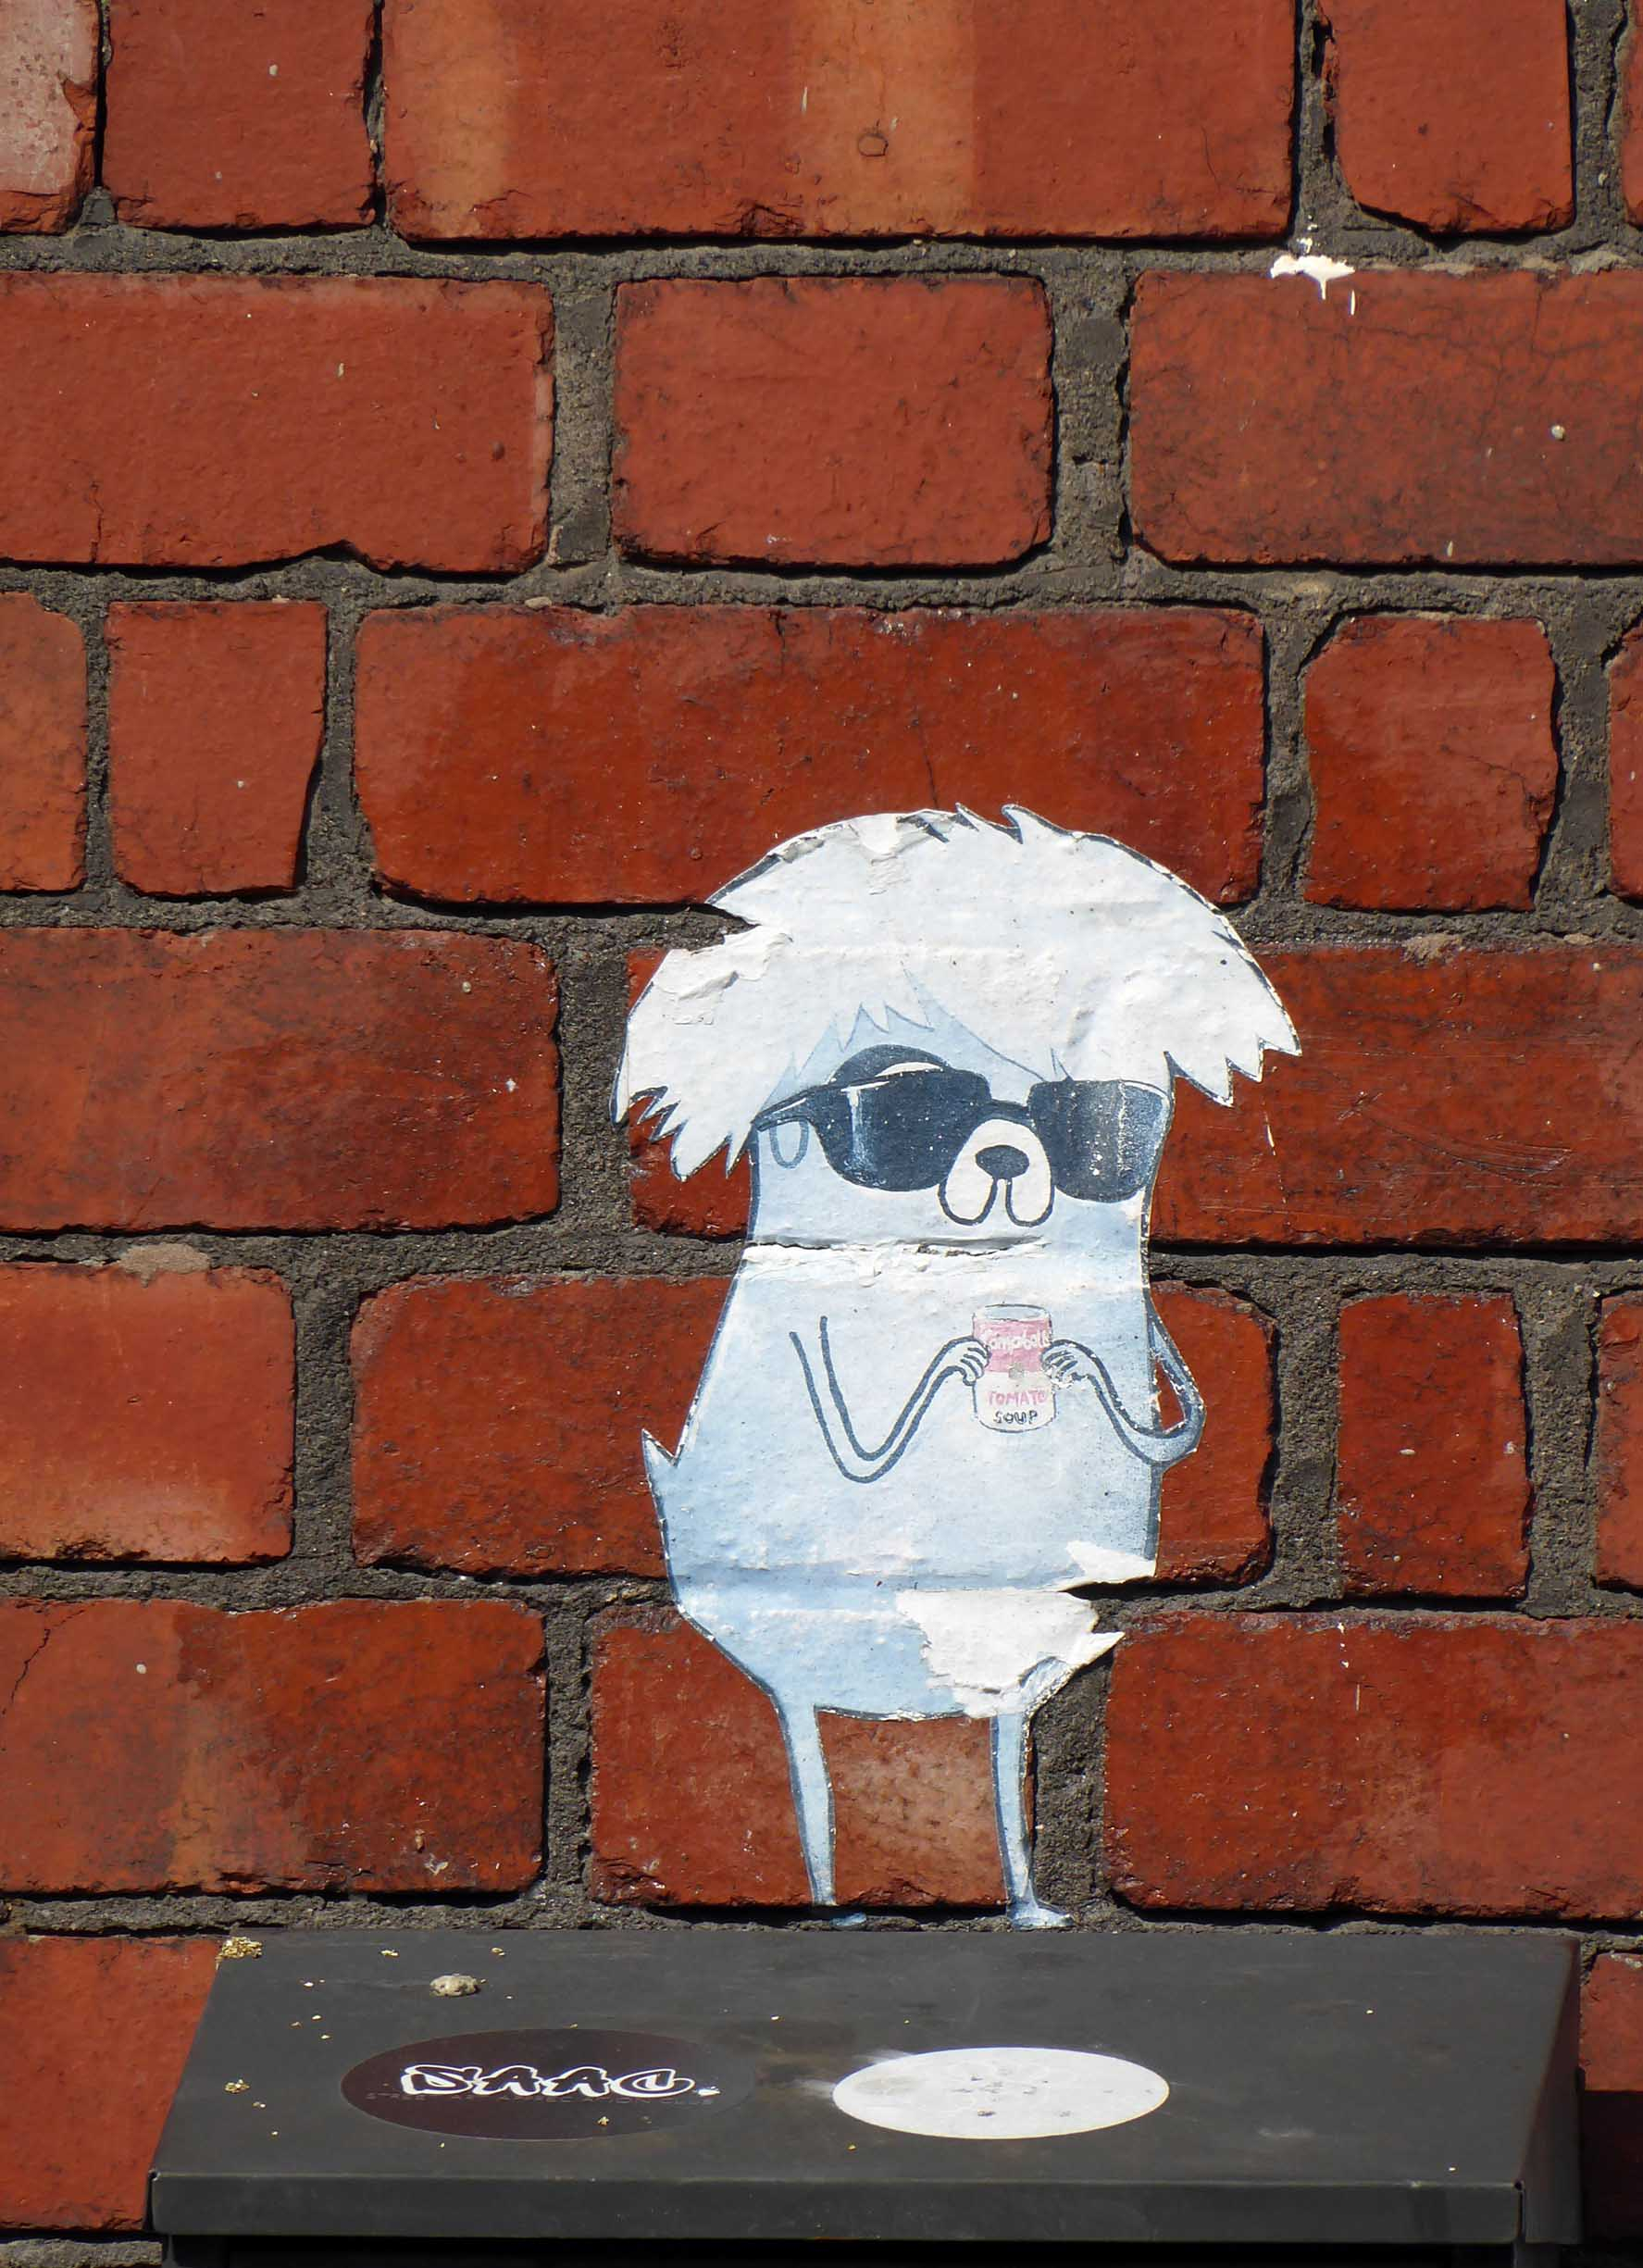 Small painting on bricks of a white creature with sunglasses